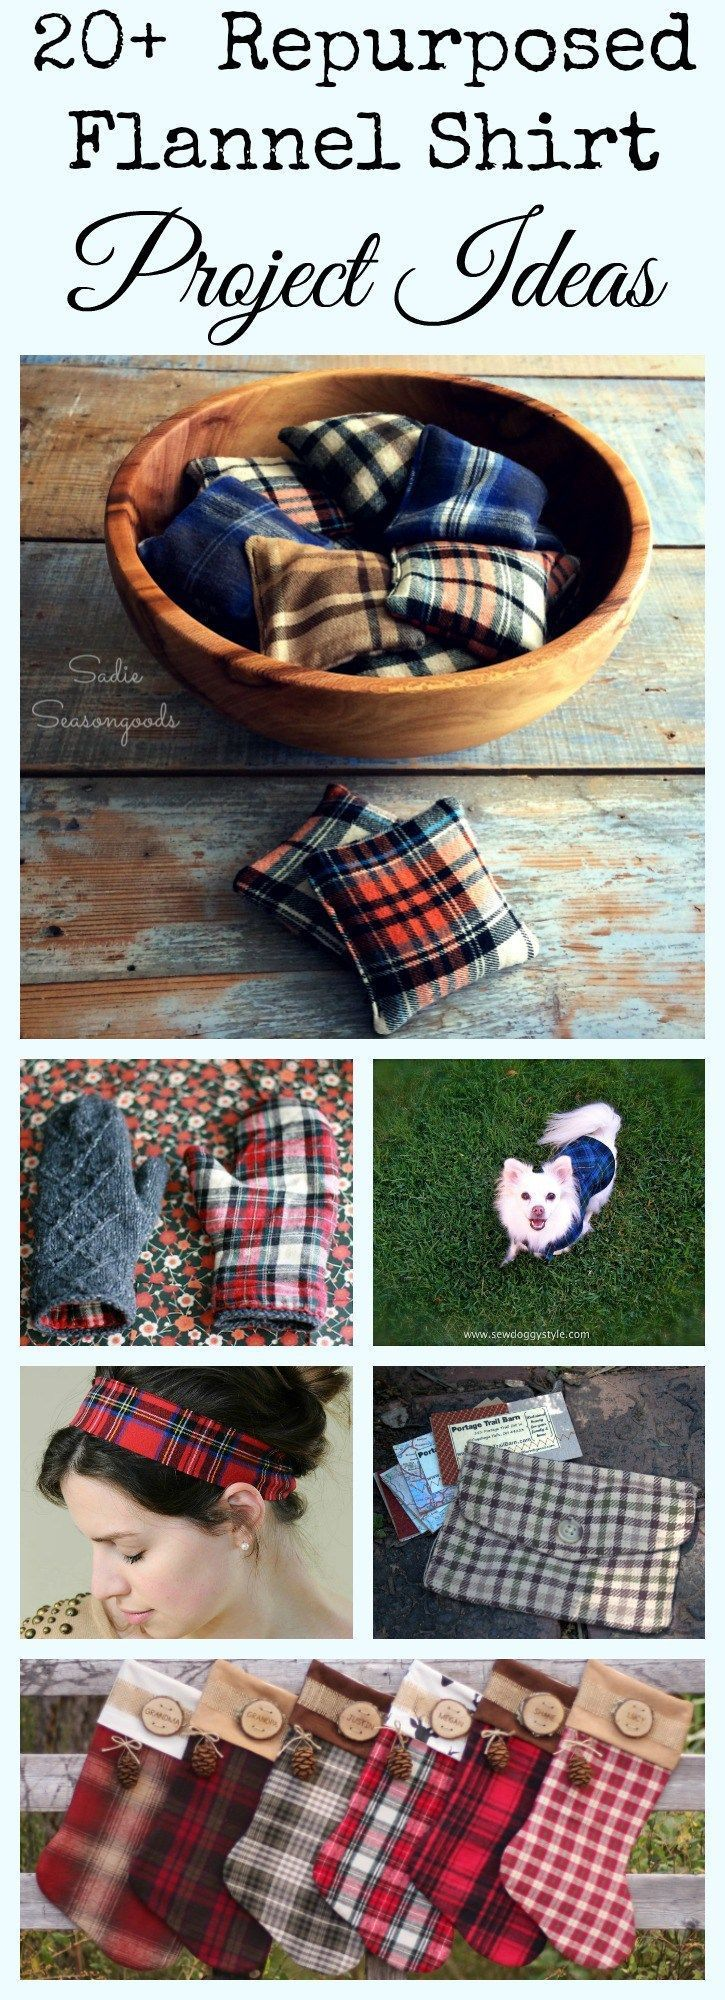 Flannel shirt ideas   Repurposed  Upcycled Flannel Shirt DIY Craft Projects  Diy